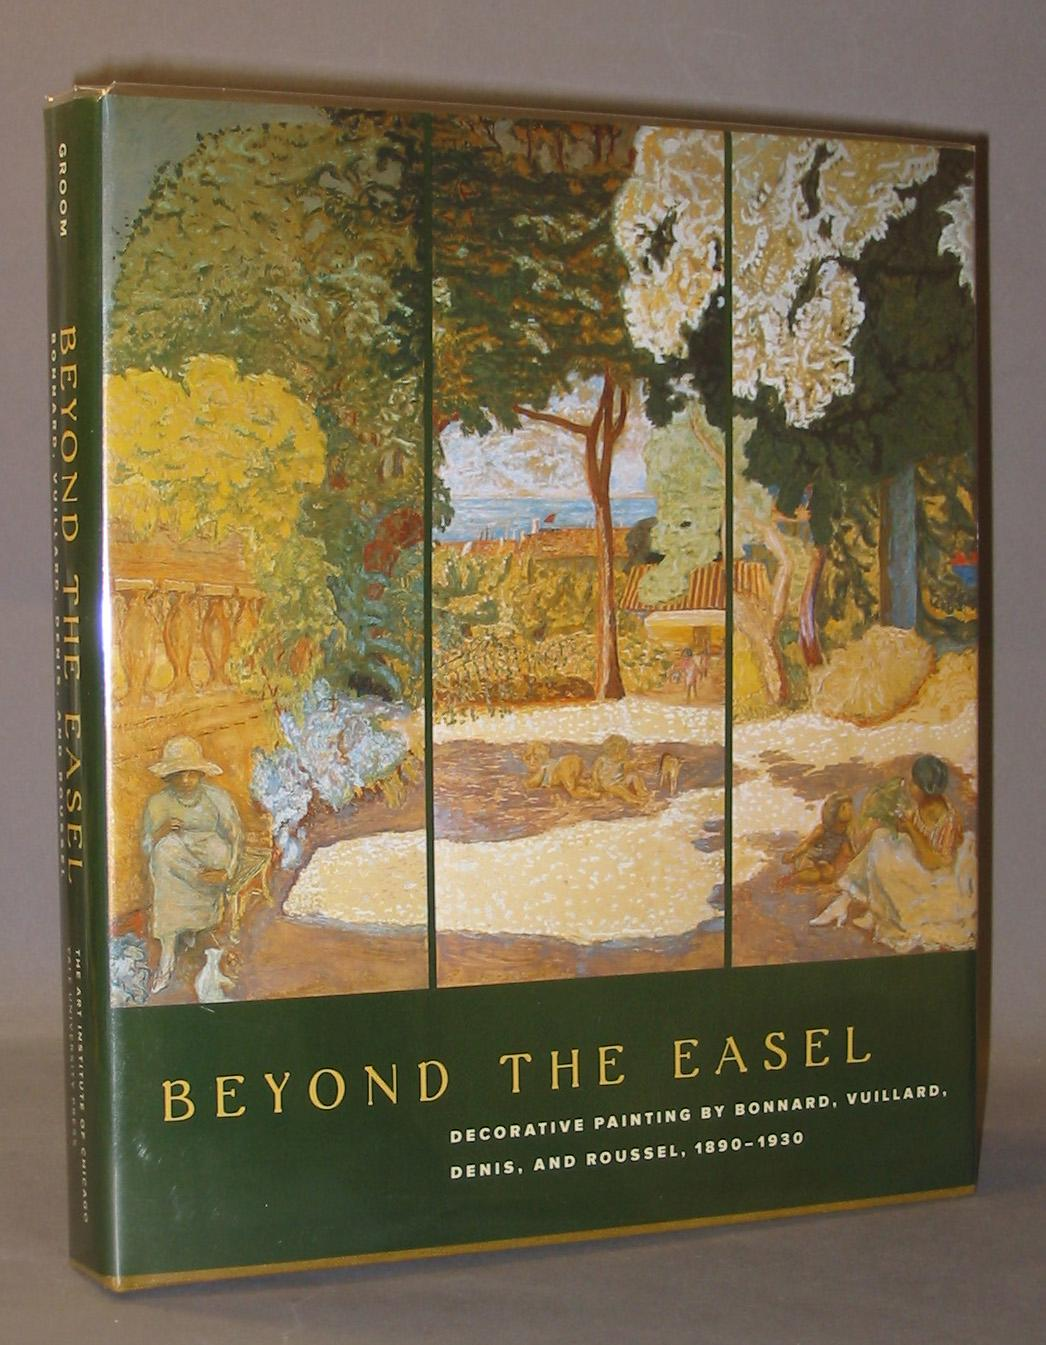 beyond the easel decorative painting by bonnard vuillard denis and roussel 1890 1930